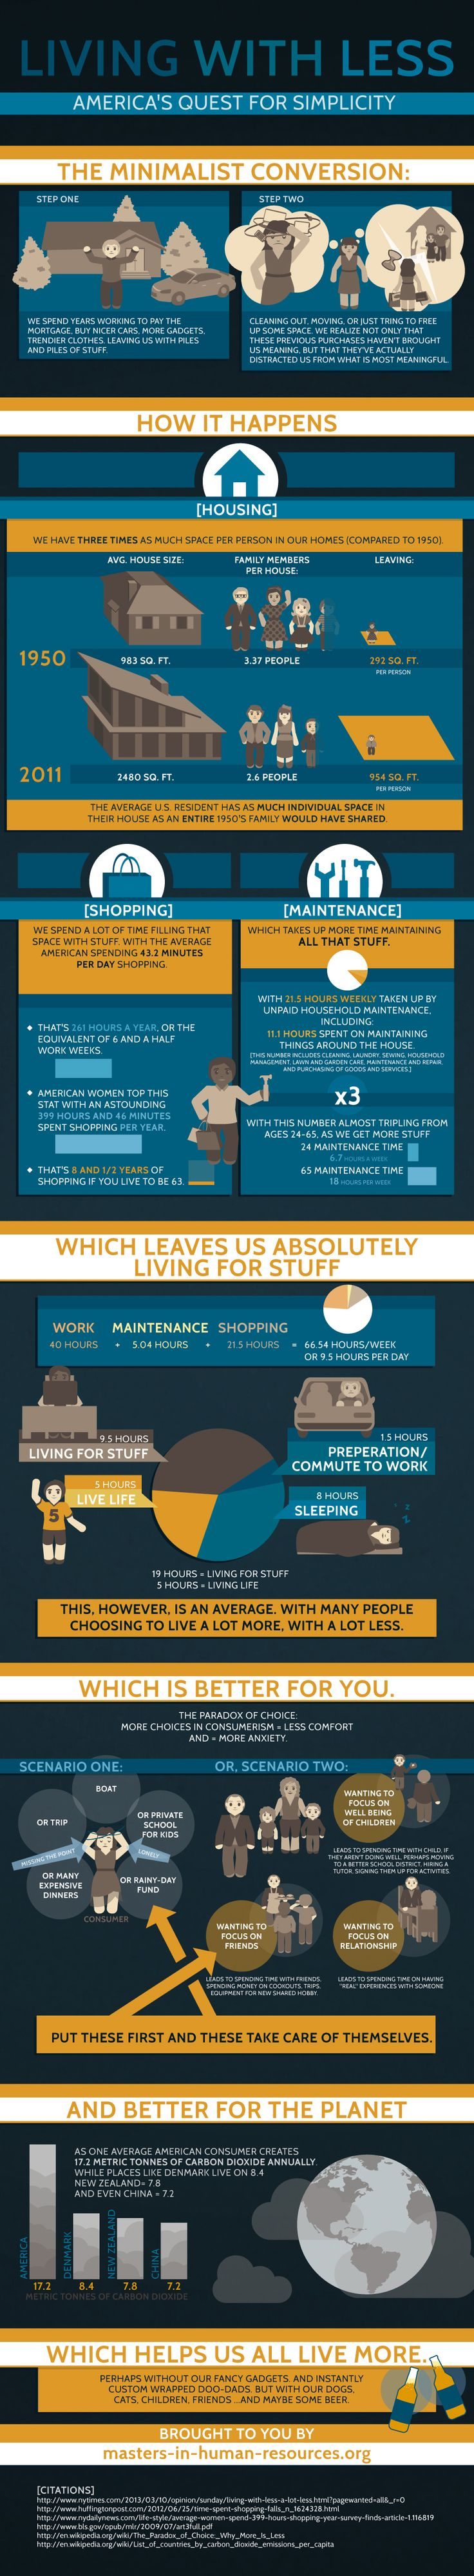 Why we need to live with less [Infographic] INFOWARS.COM BECAUSE THERE'S A WAR ON FOR YOUR MIND